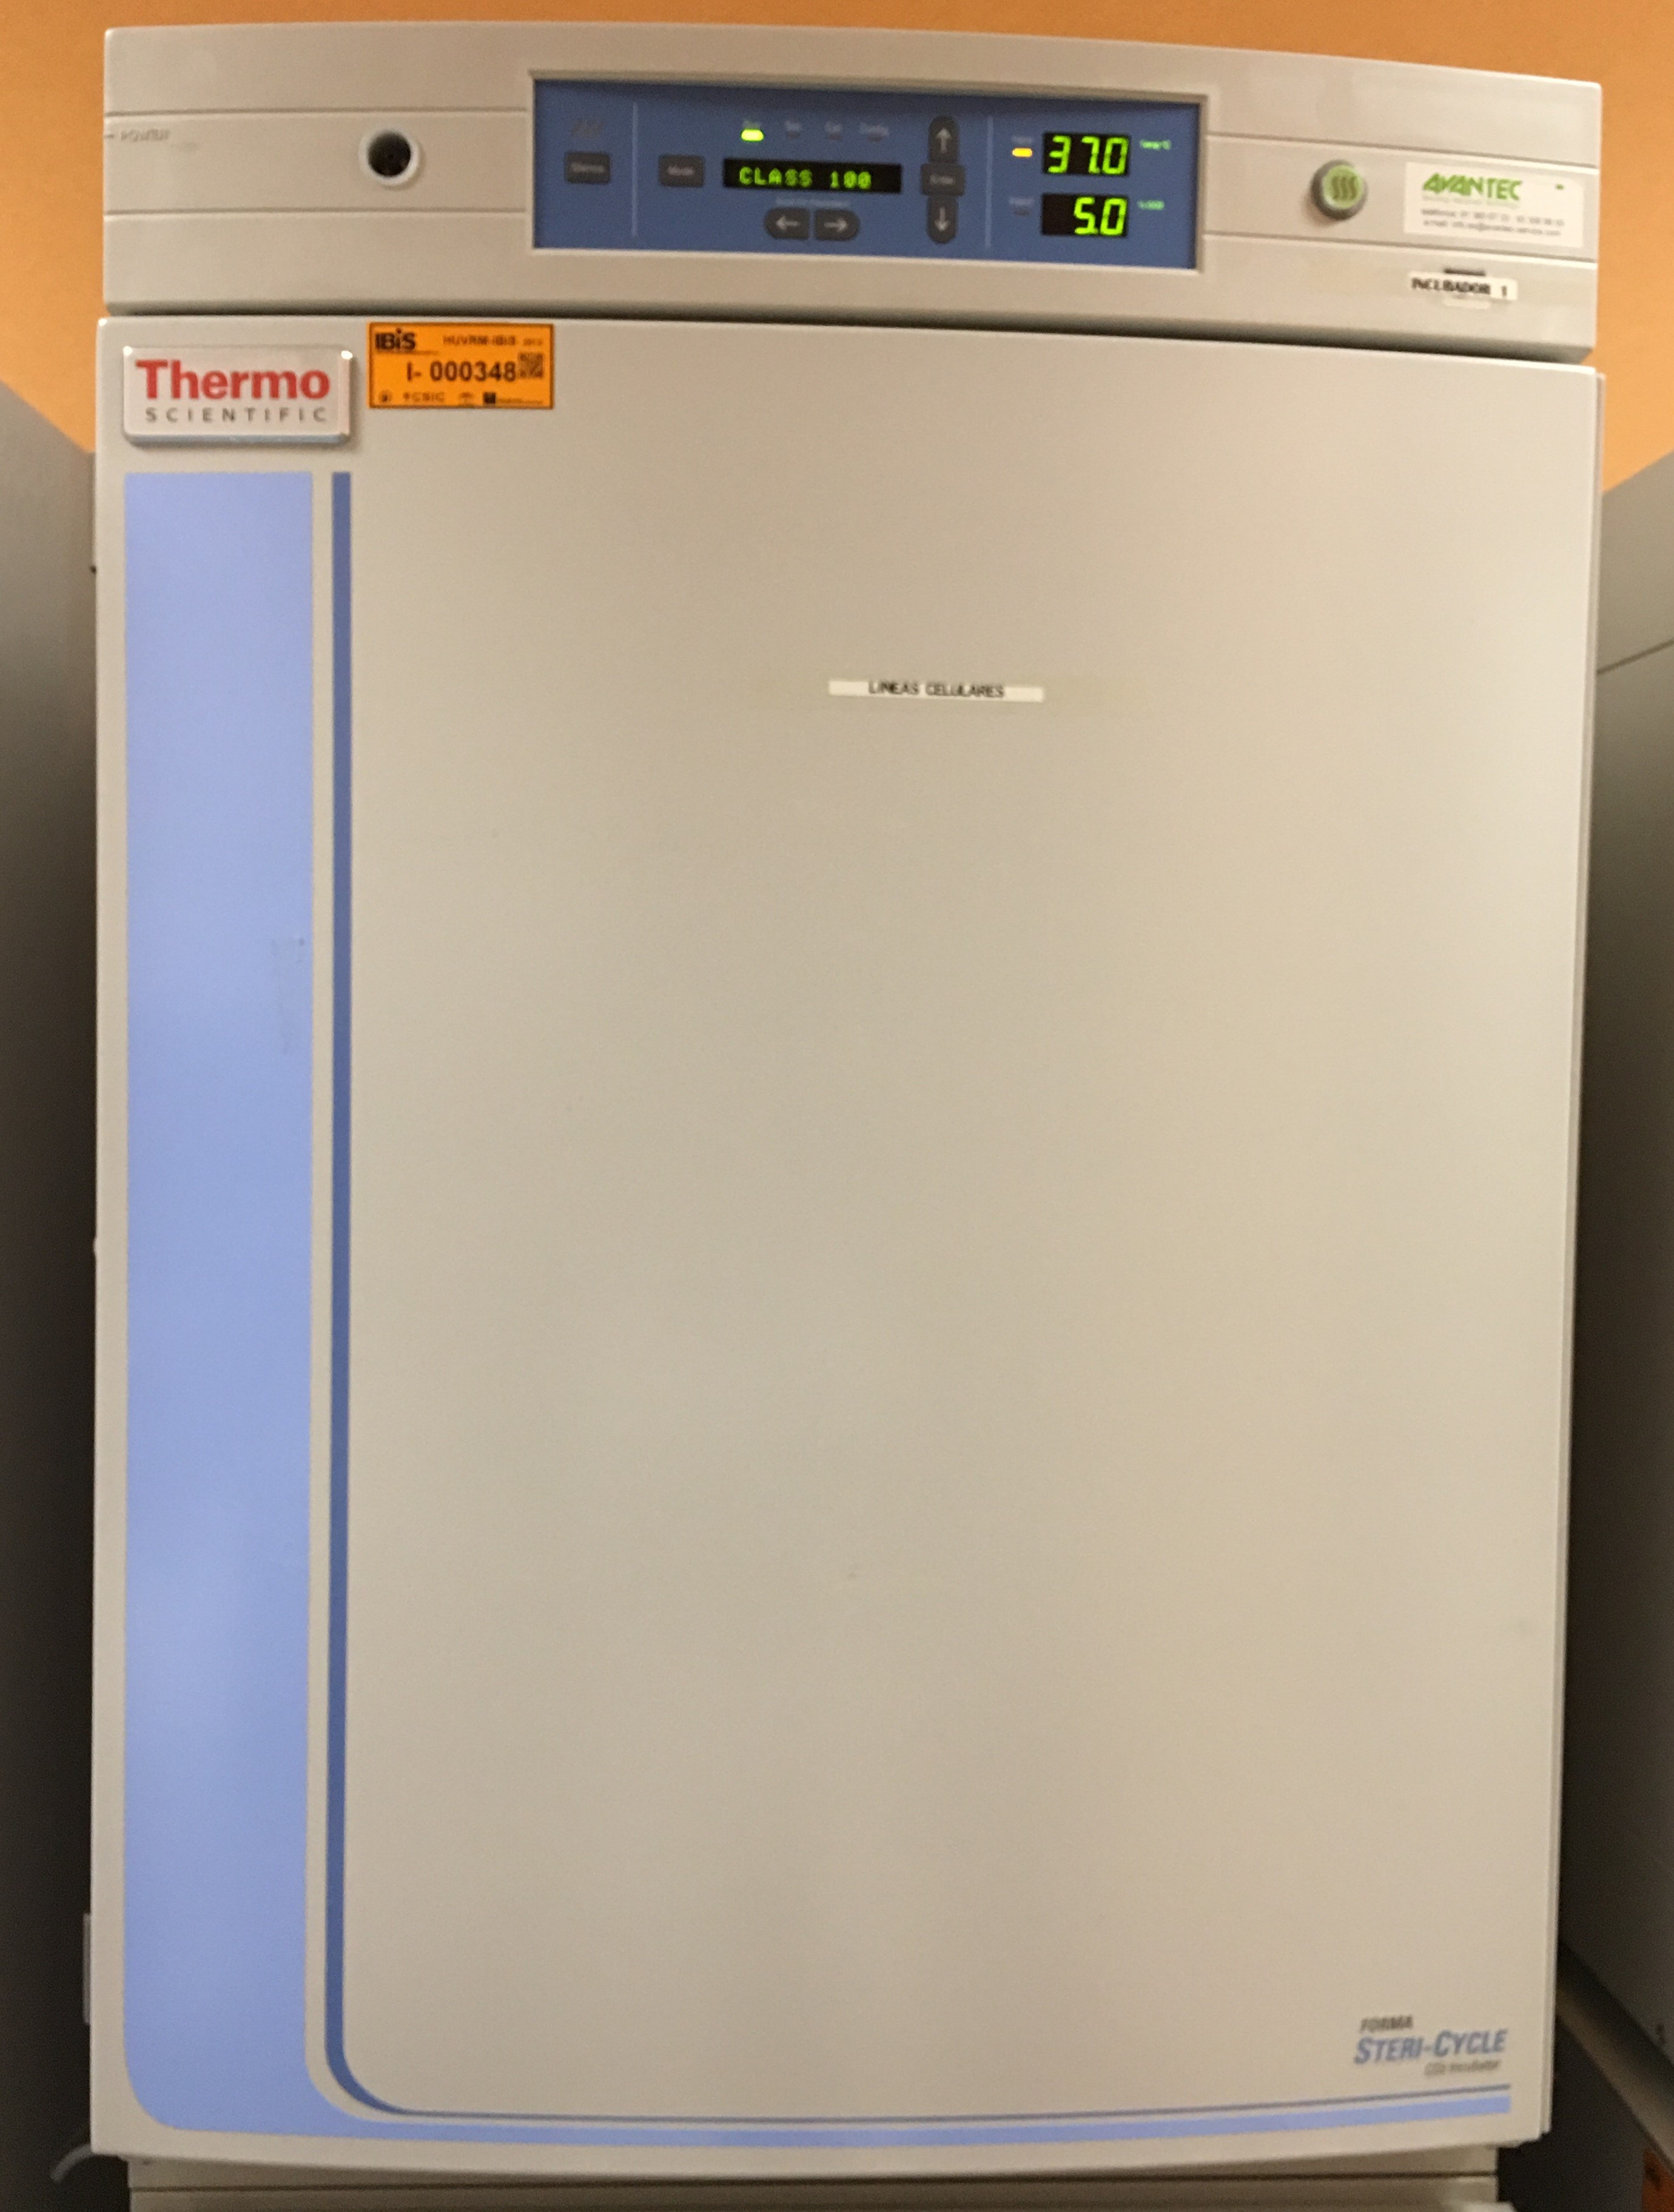 Incubador de CO2 (Thermo Scientific). 26 unidades